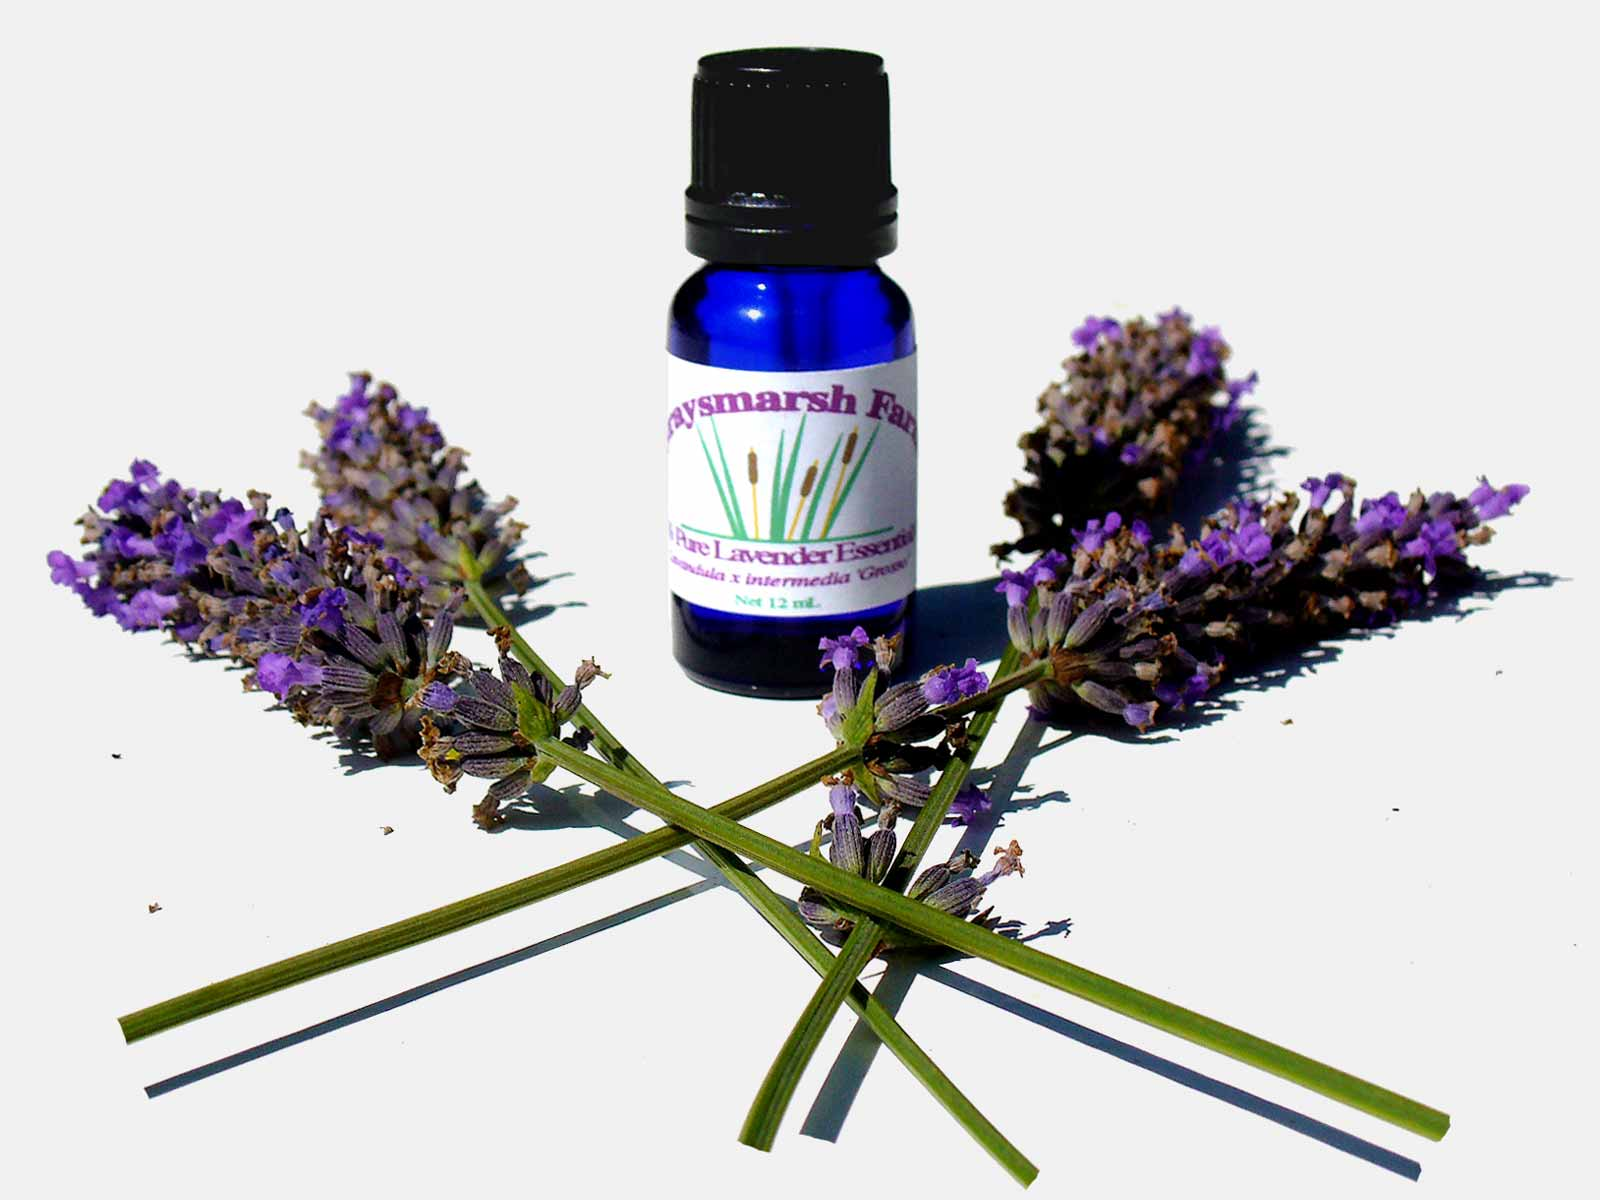 Where to find lavender oil